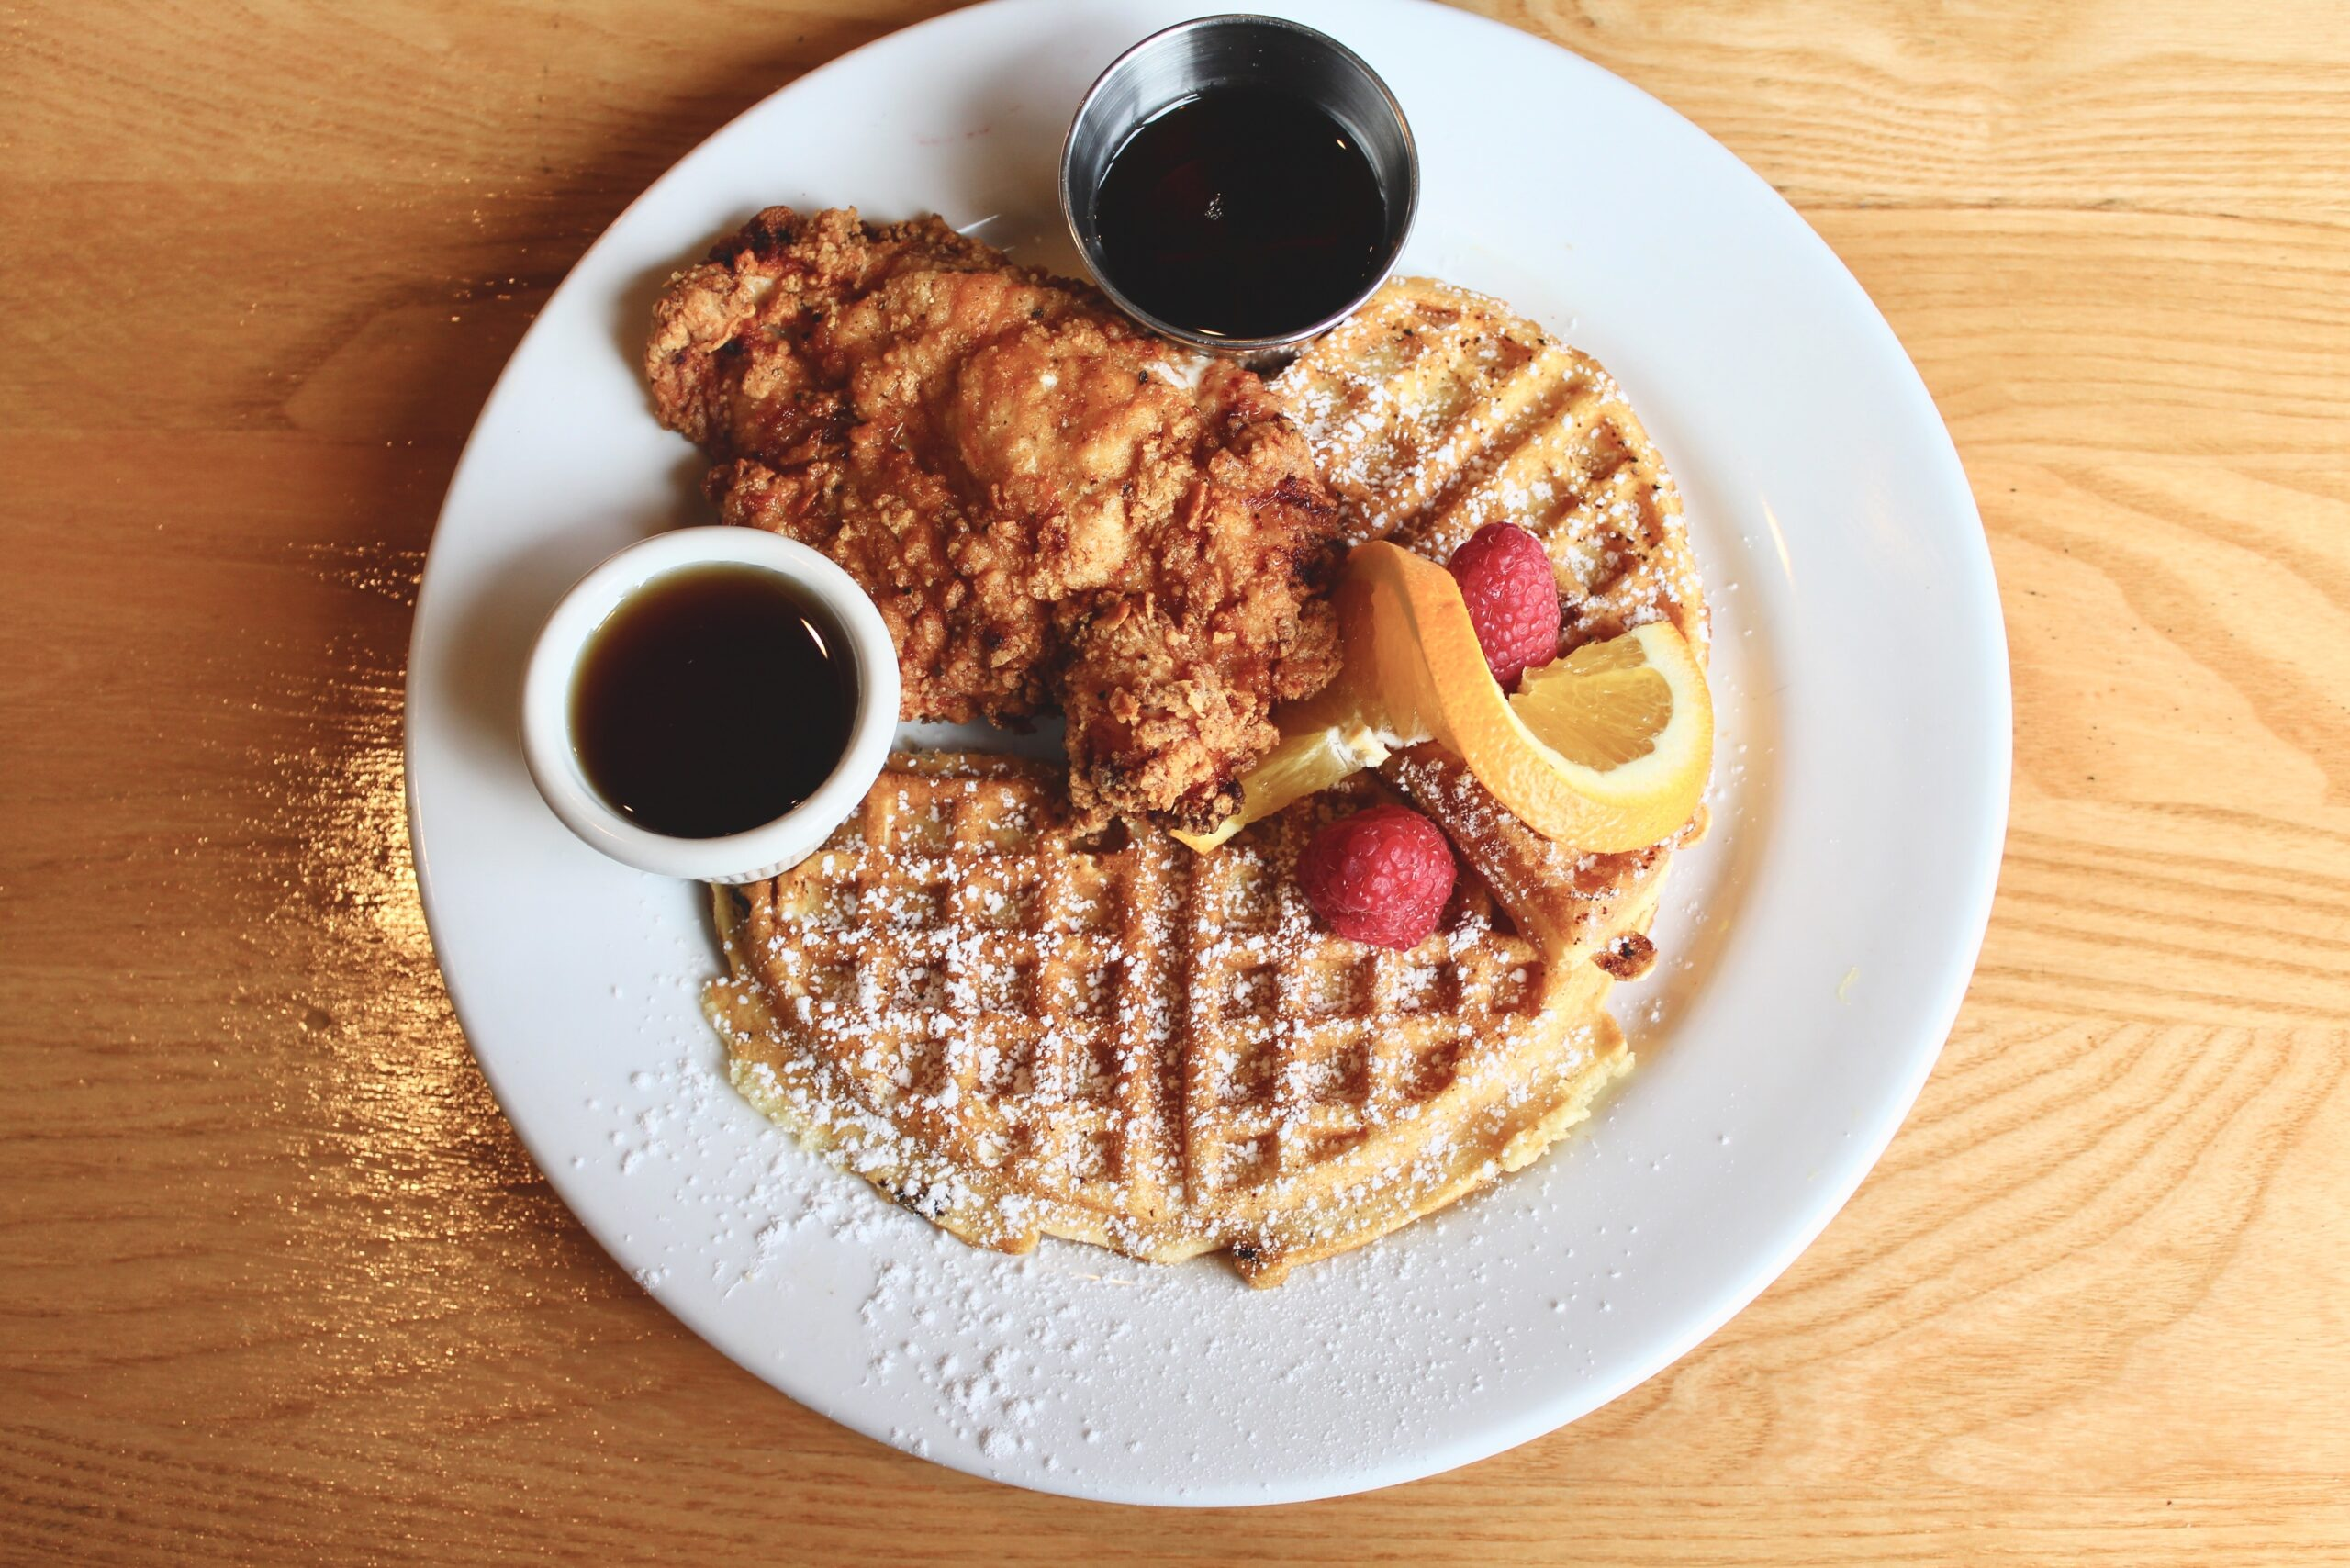 chicken & waffles at Shugga Hi Bakery & Cafe